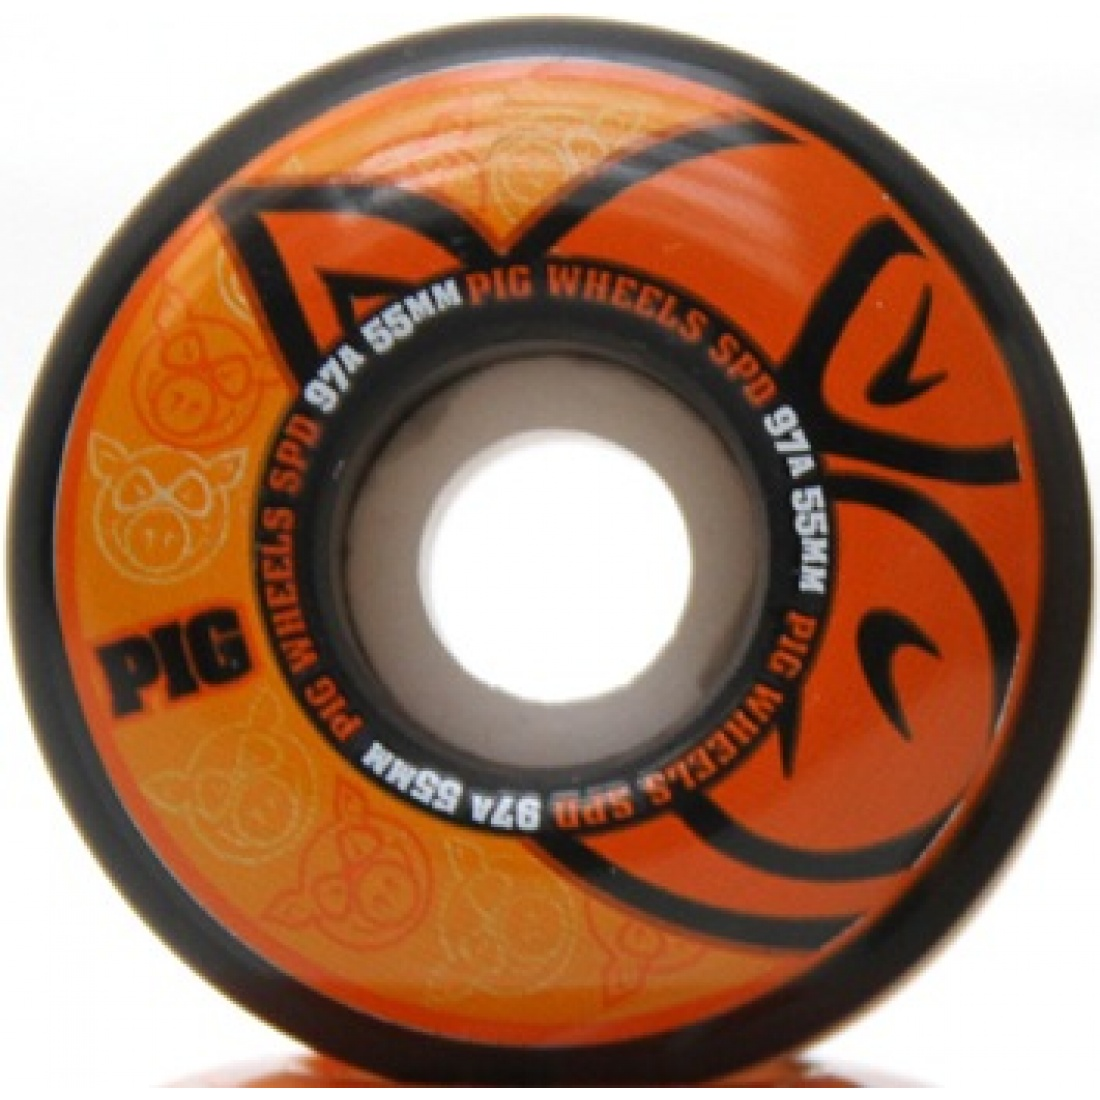 PIG-SPD BLK/NAT V.2 Orange 55MM Wheels (Set of 4)